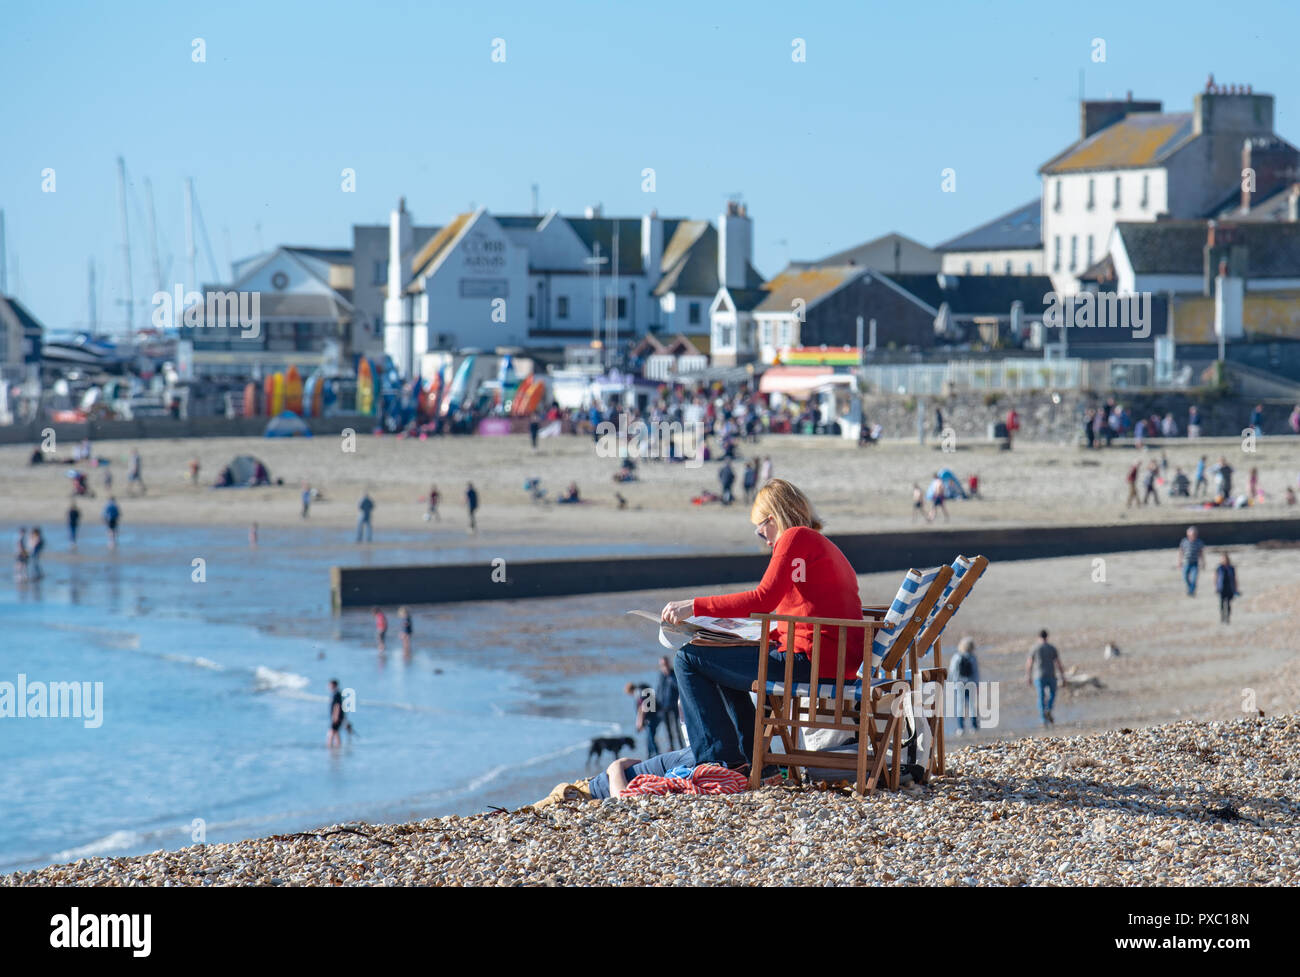 Lyme Regis, Dorset, UK. 21st October 2018.  UK Weather:  Warm weekend sunshine and clear blue skies at Lyme Regis. A woman sits in a deckchair reading a newspaper in Lyme Regis as Britain enjoys one last sunny weekend before chillier, wintery conditions arrive and temperatures plummet later in the week. Credit: Celia McMahon/Alamy Live News - Stock Image